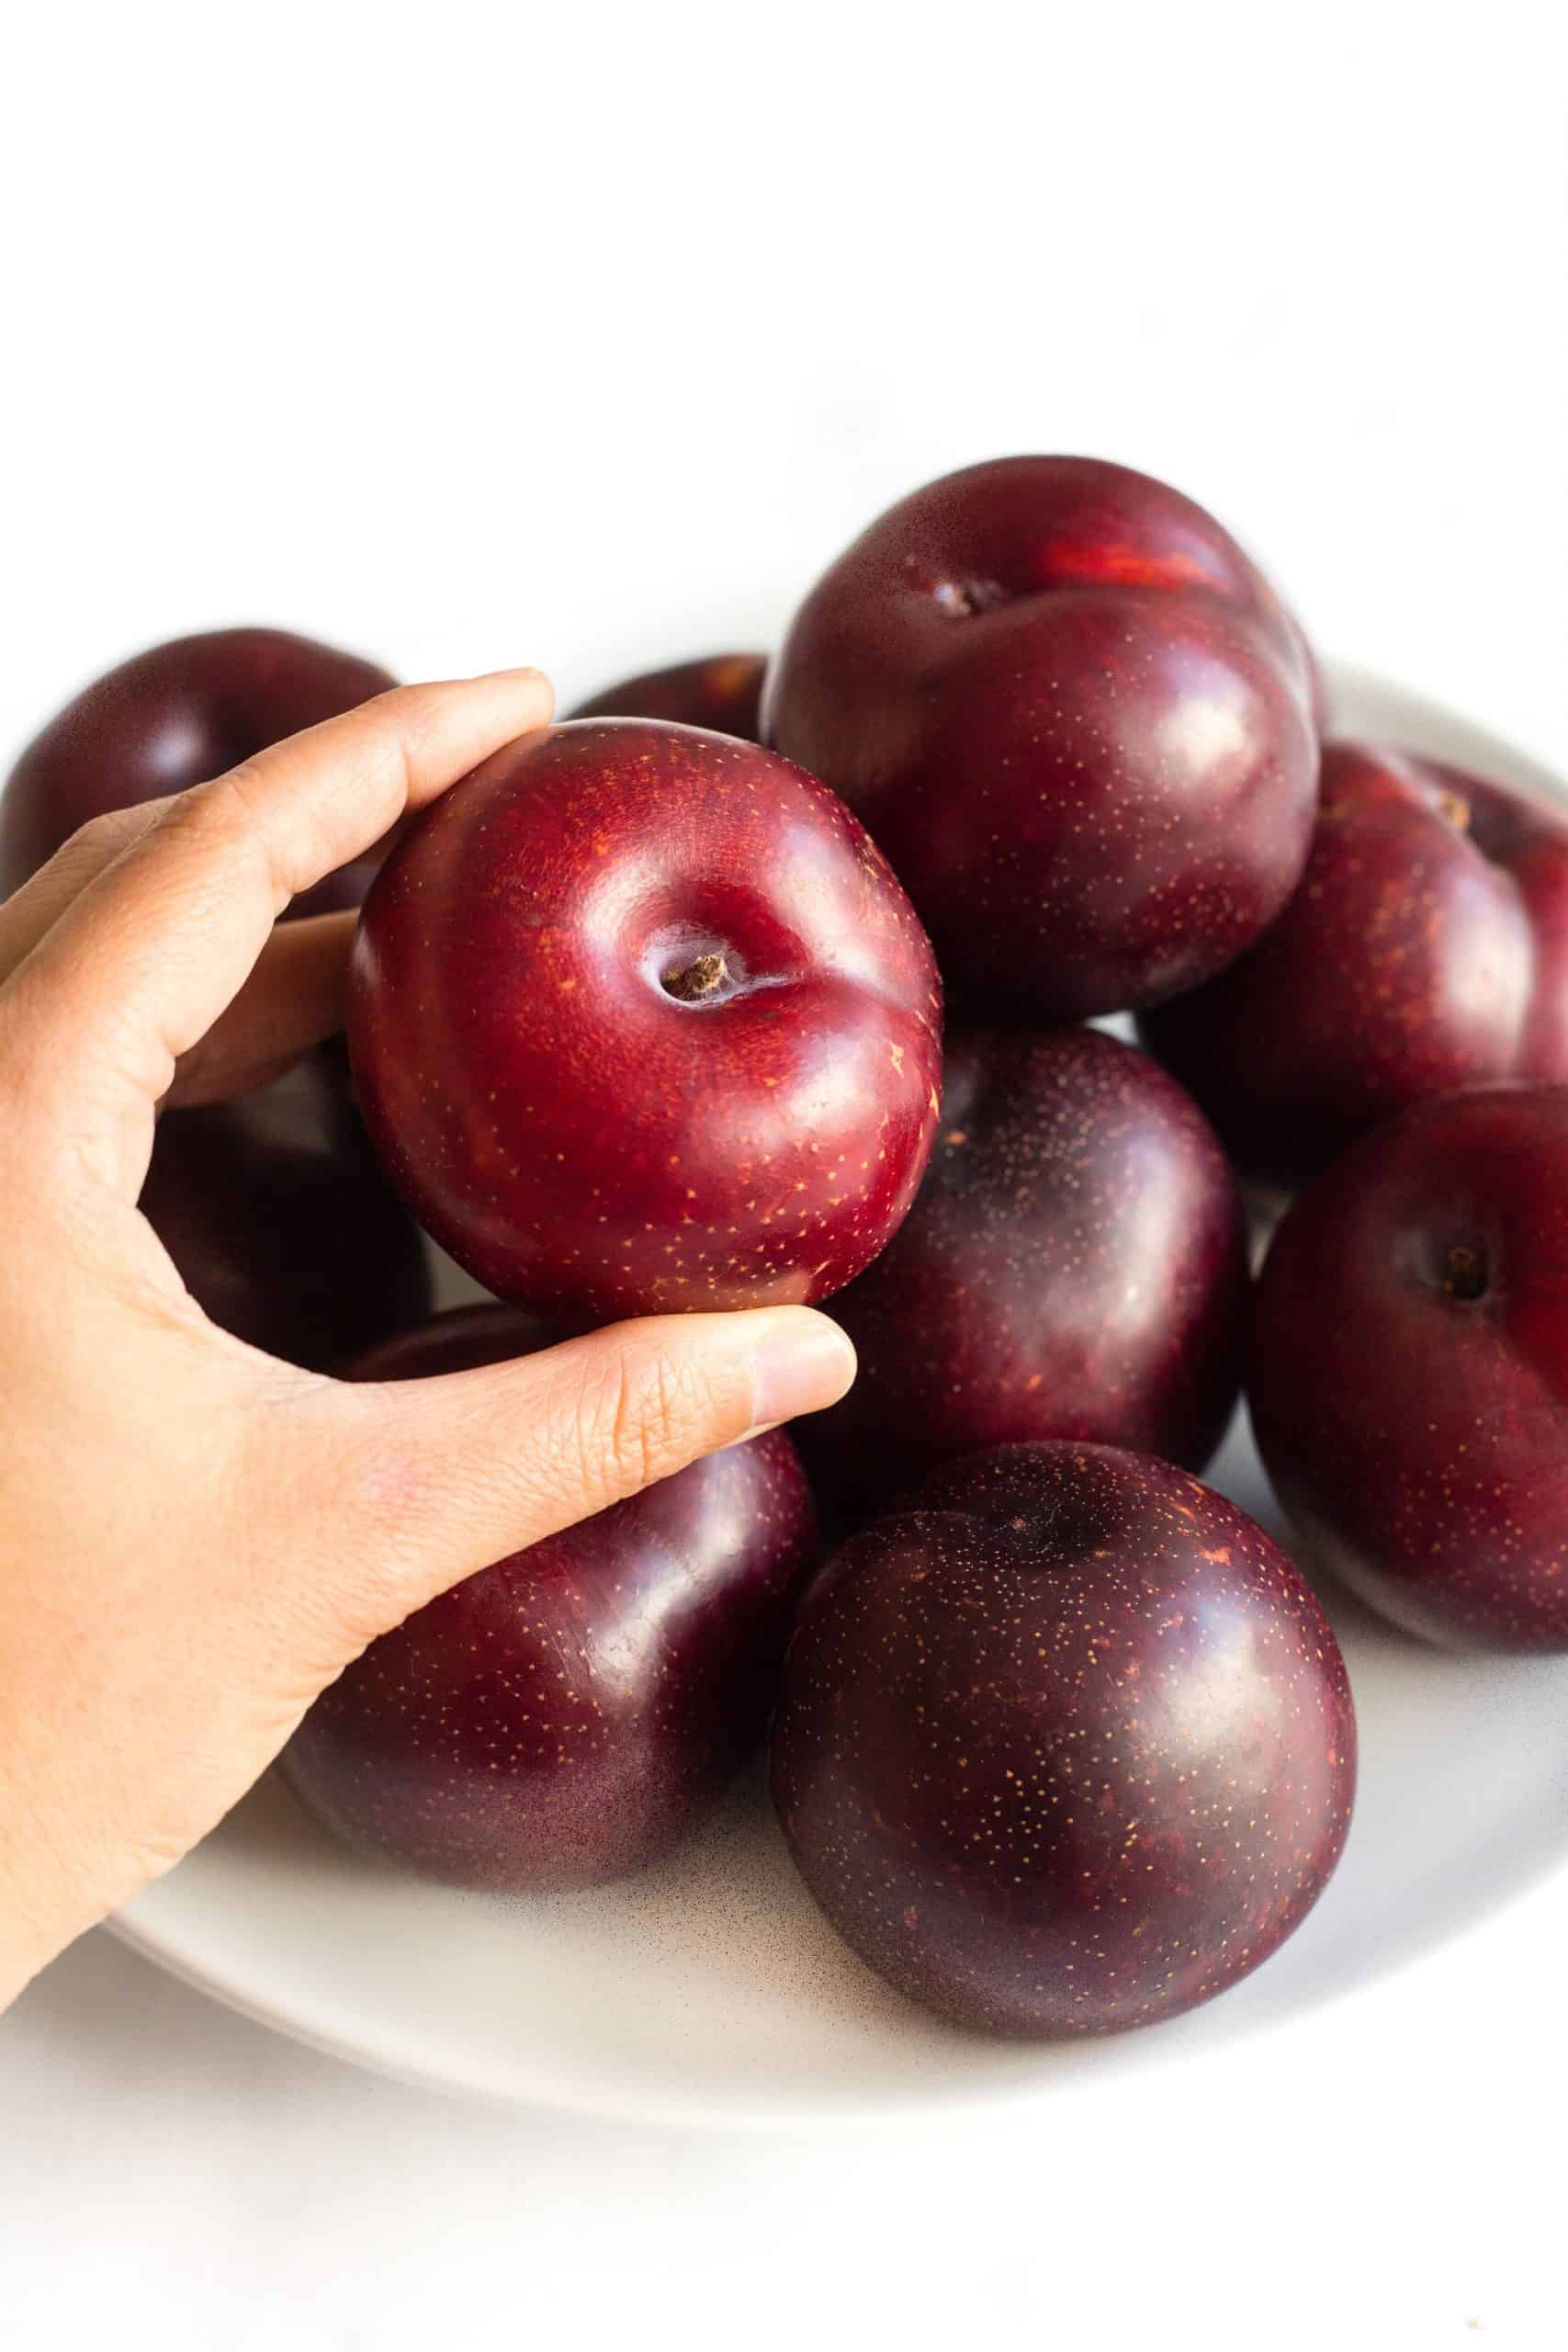 Hand reaching for a fresh plum from a plate full of plums.